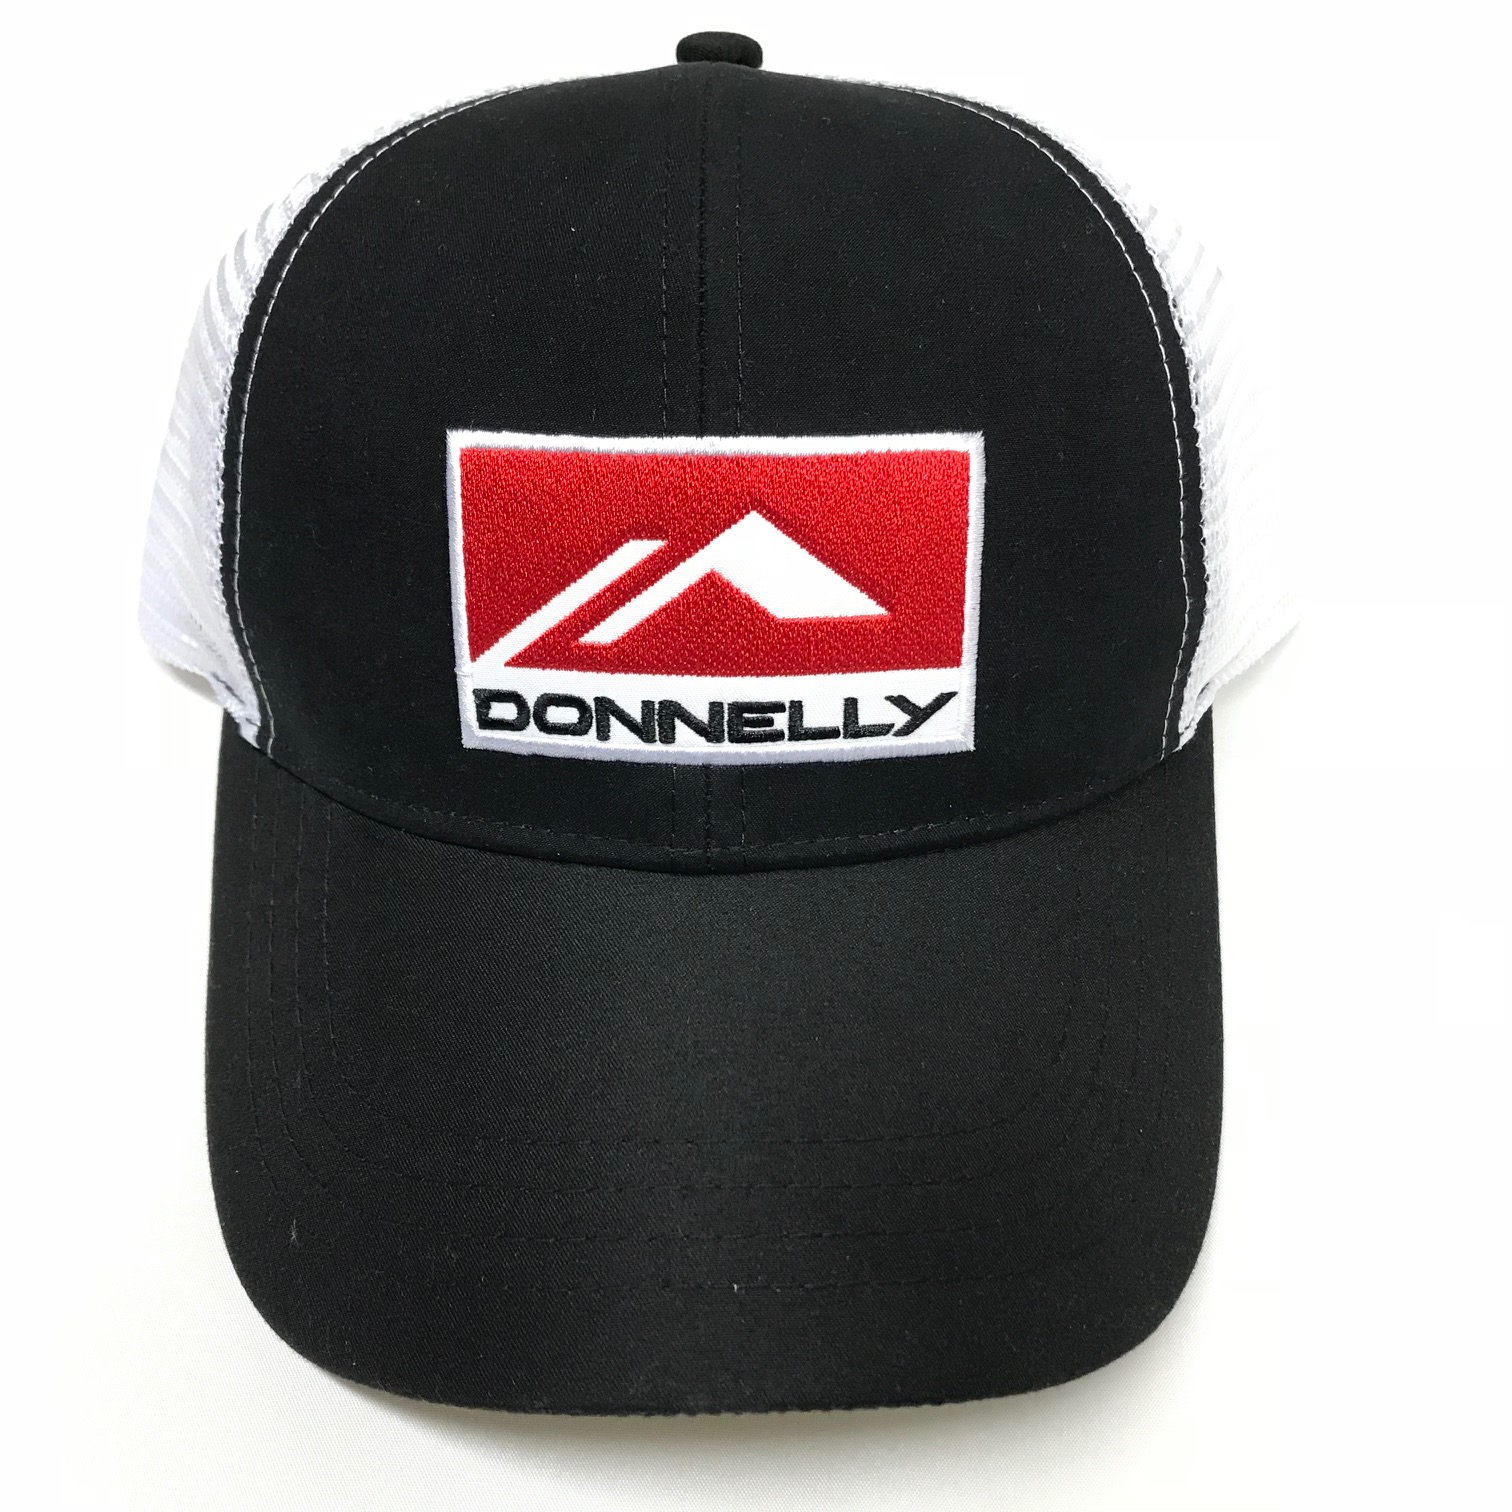 Donnelly Trucker Hat, Curved Bill, Black